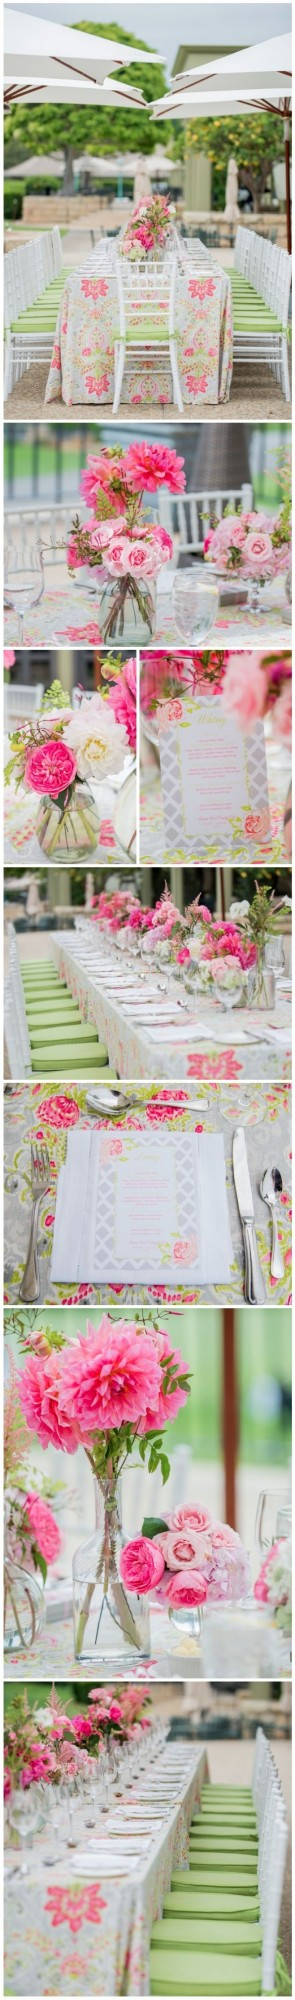 How to Organize The Best Bridal Shower At Home 22 Ideas That Your Guests Will Love (1)